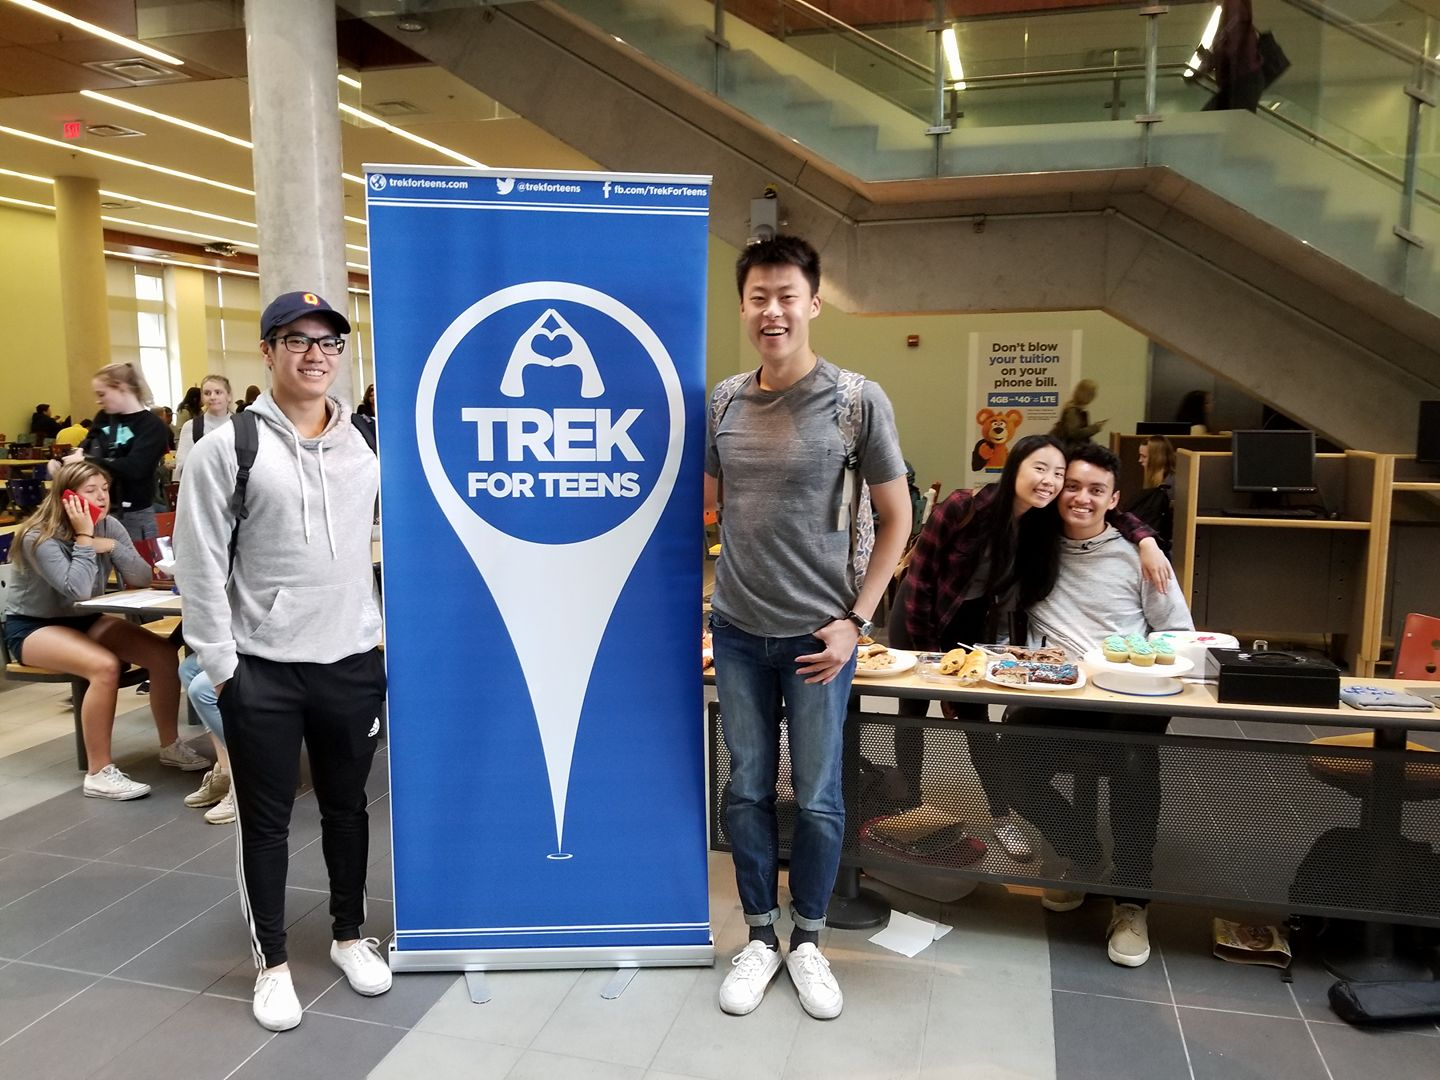 On Sept 29, Trek for Teens Kingston held a bake sale to raise awareness of Trek for Teens, and reached approximately 200 people!